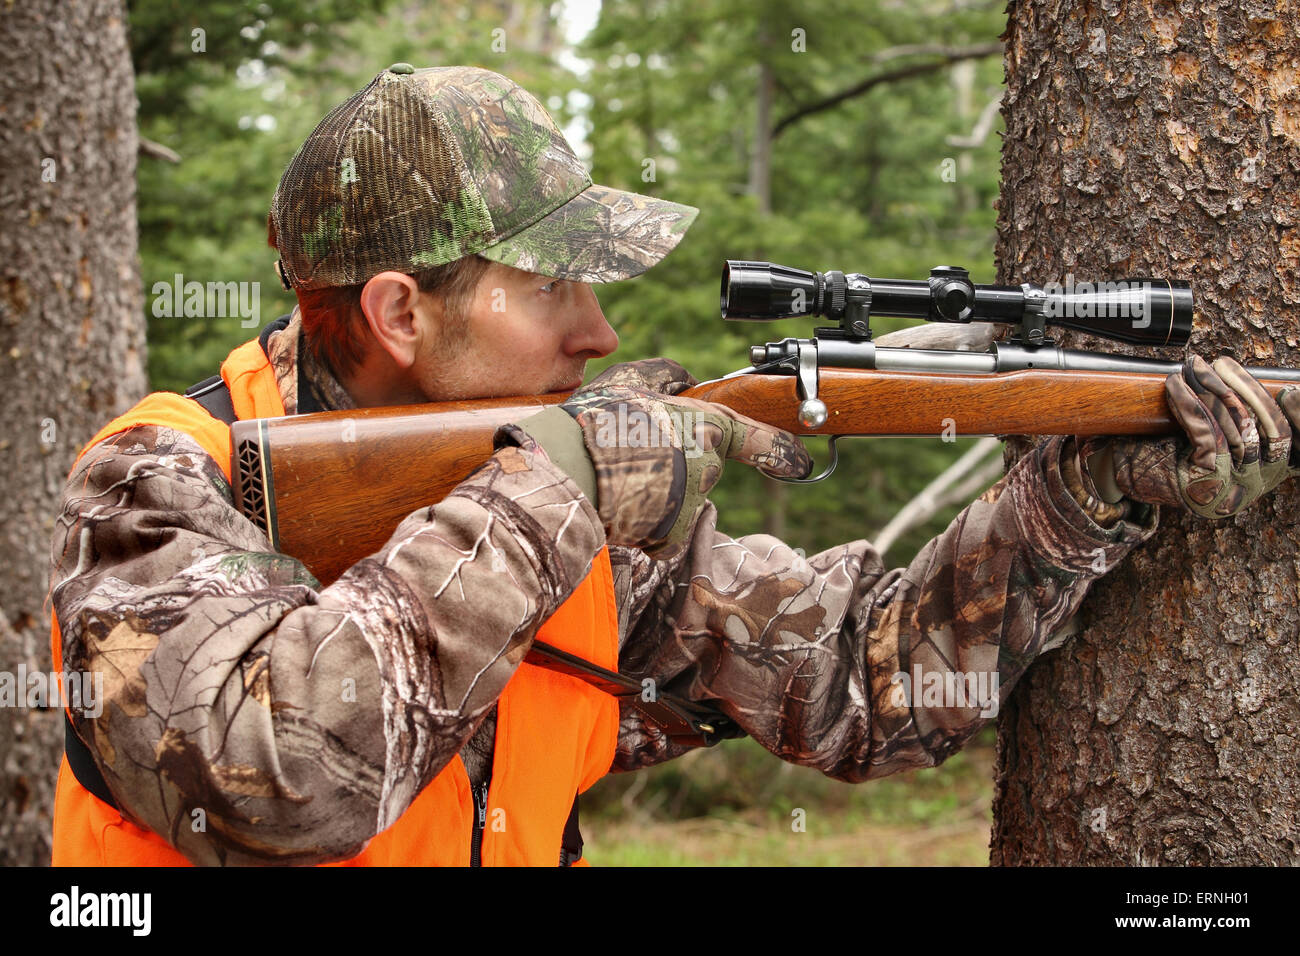 adult hunter aiming deer rifle in forest - Stock Image